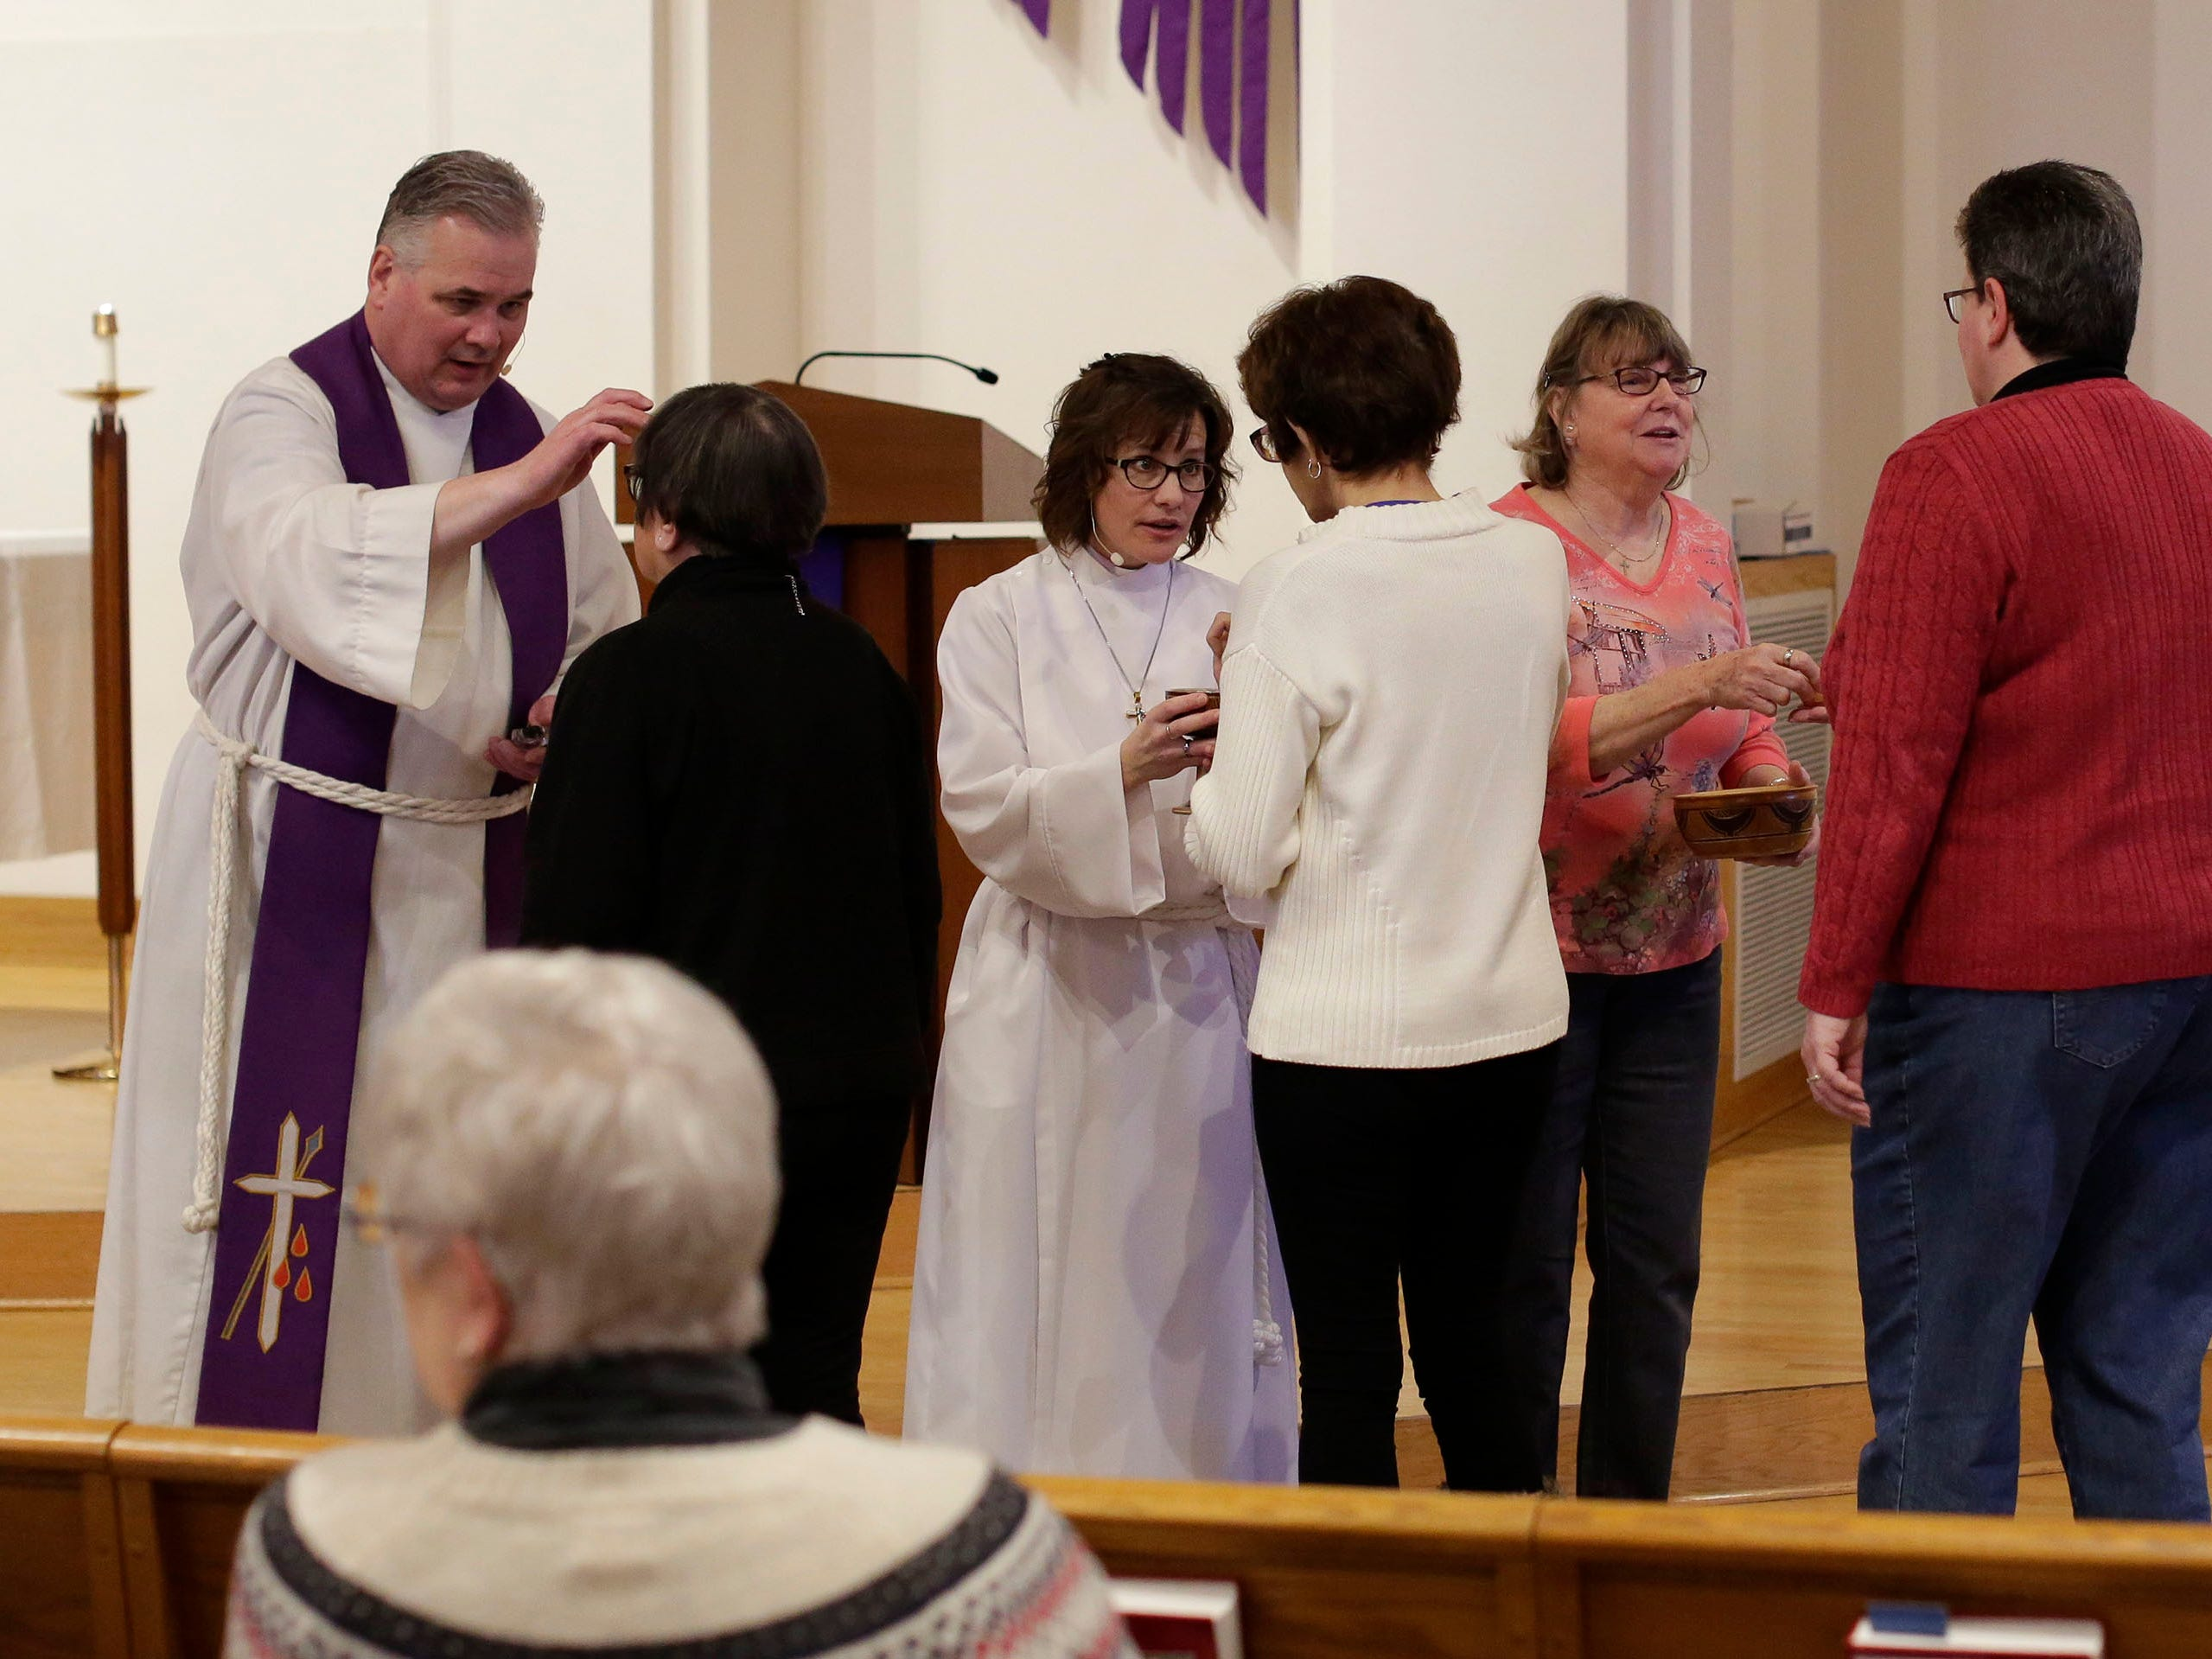 Rev. Todd Smith, left, puts ashes on the forehead of parishioners during Ash Wednesday service at First United Lutheran Church, Wednesday, March 6, 2019, in Sheboygan, Wis.